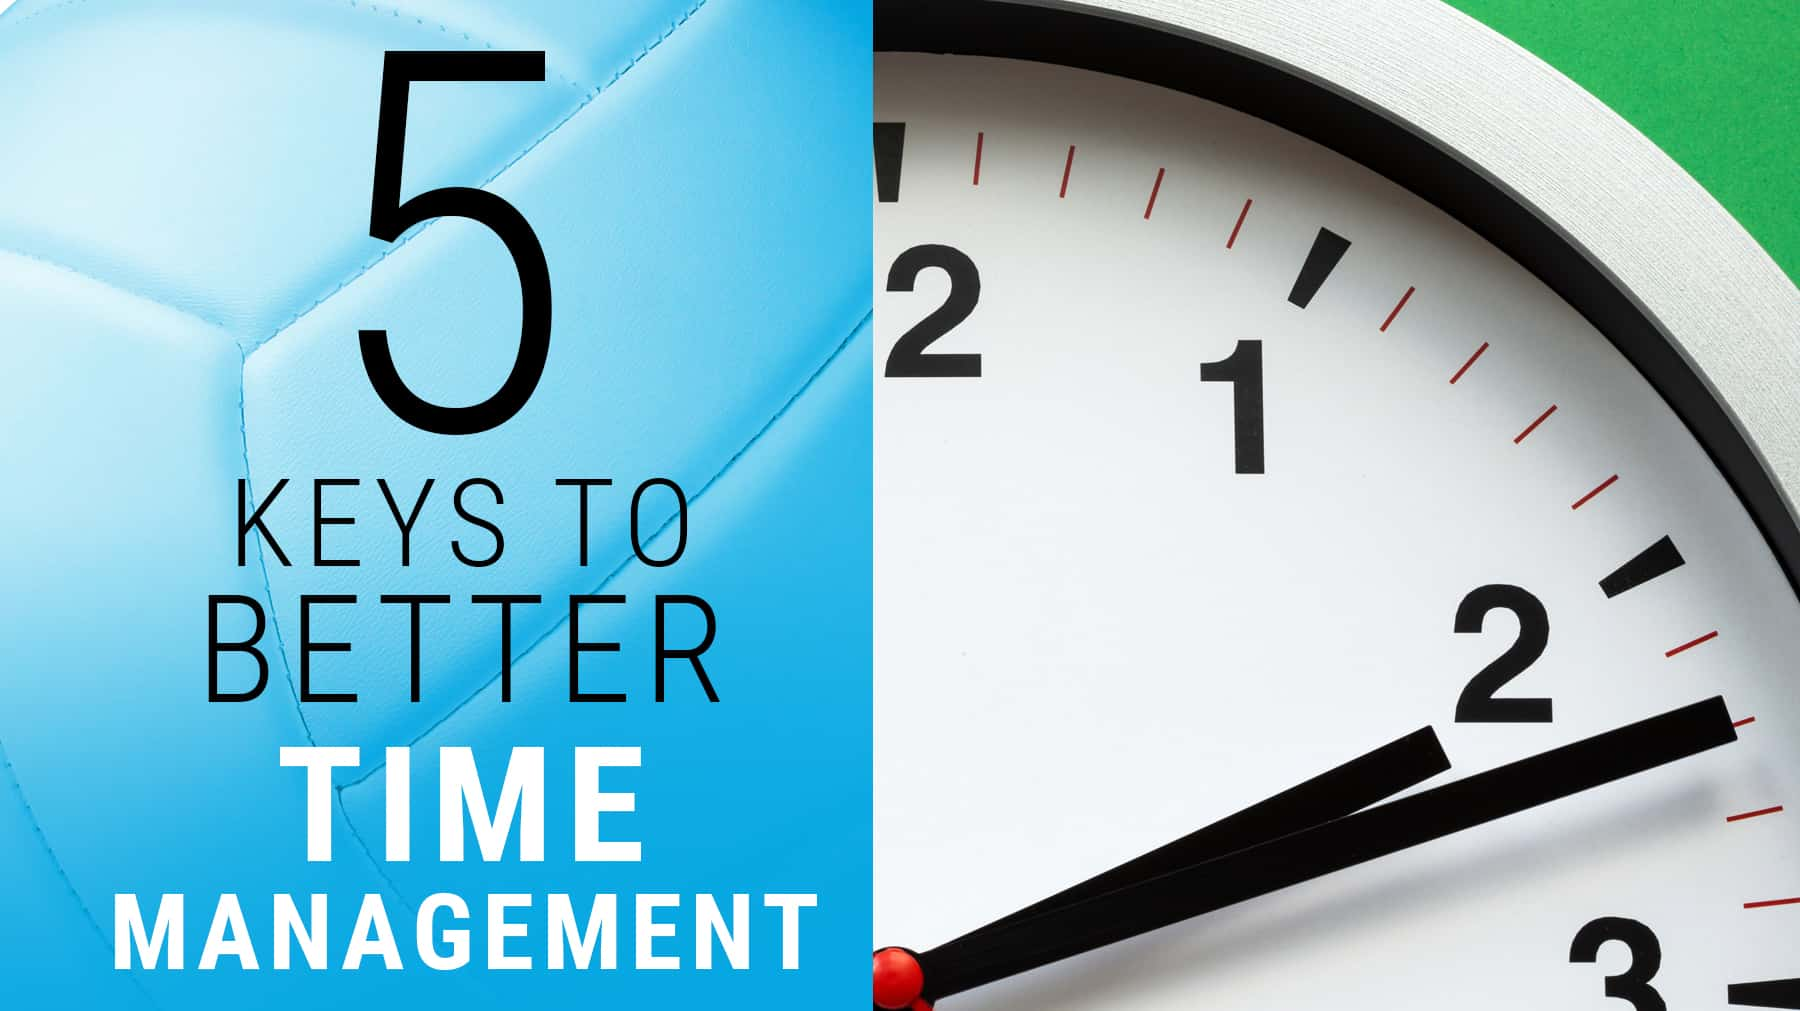 5 keys to better time management